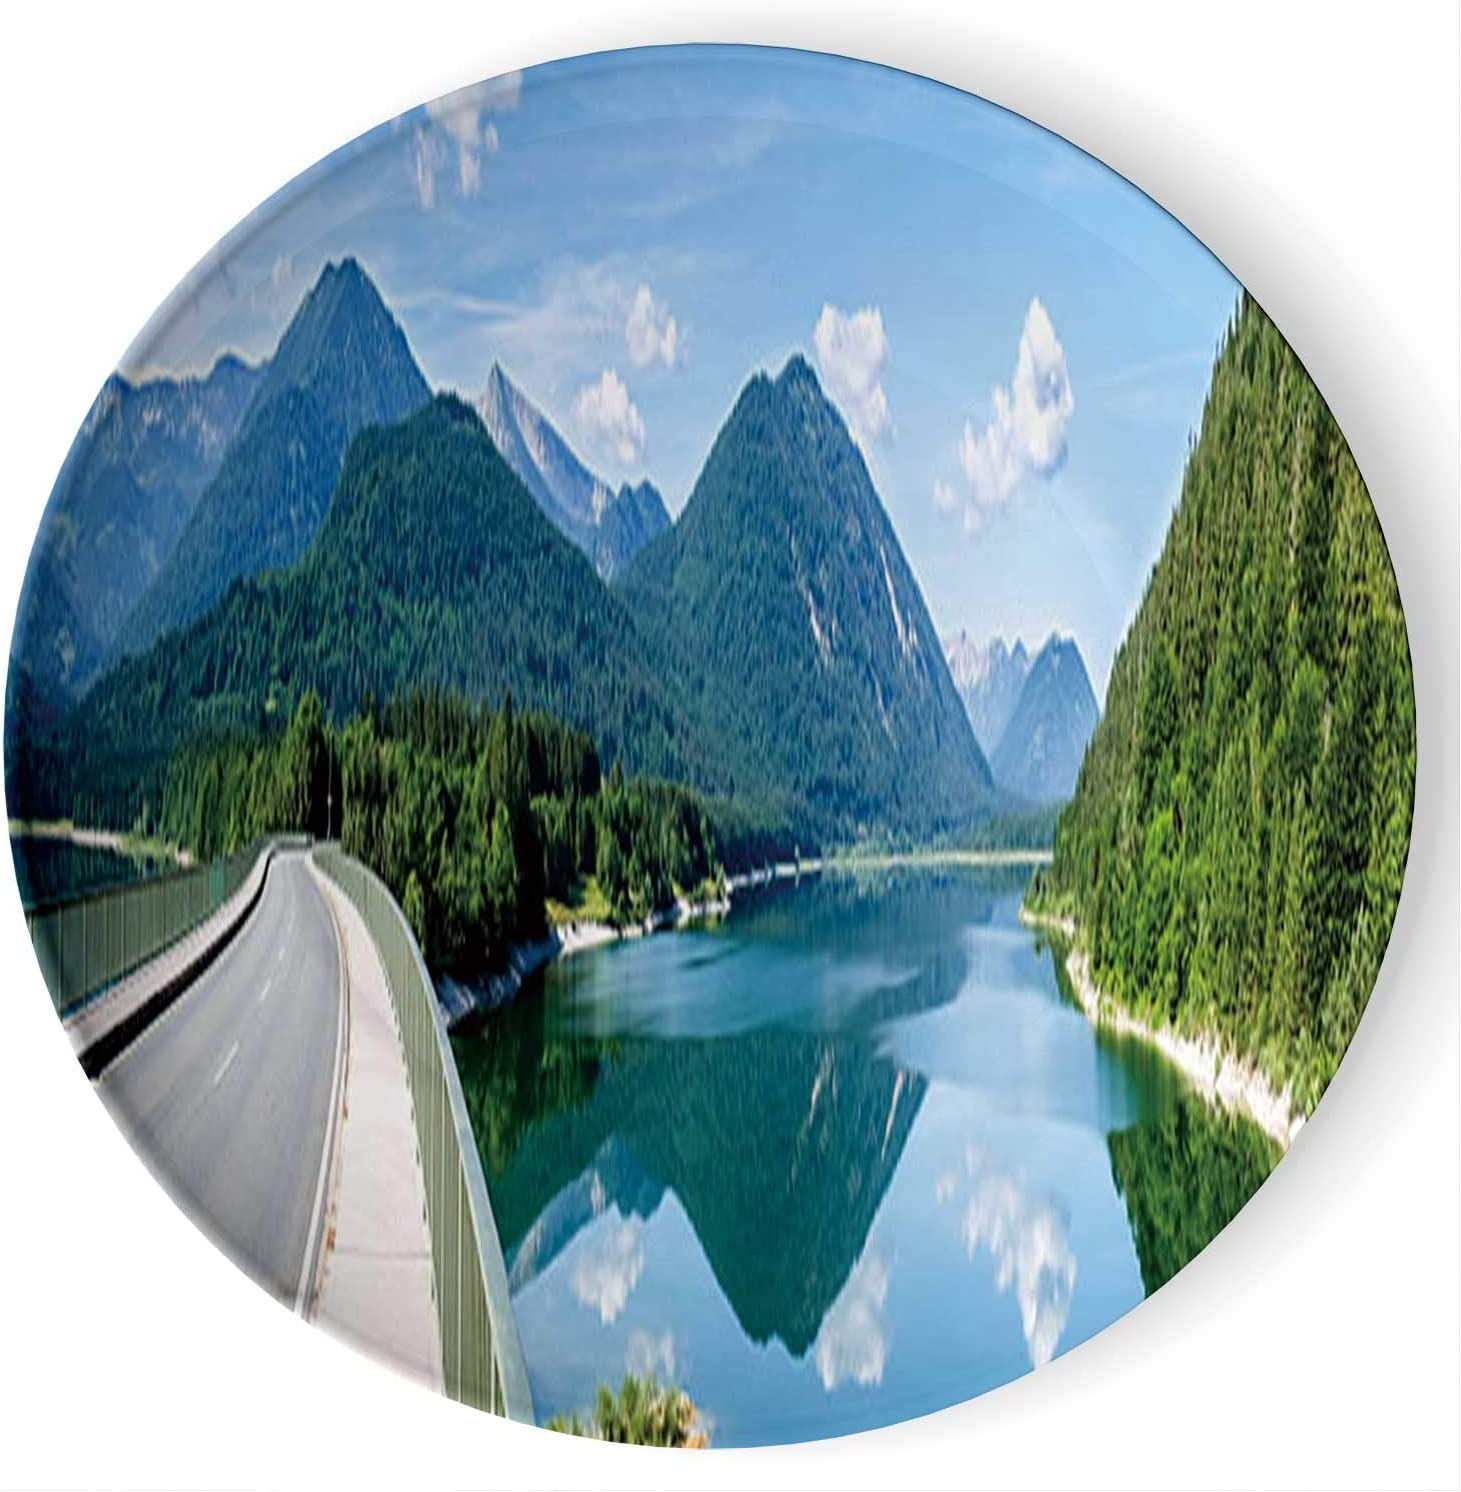 Swiss Uri Alps Landscape Art Home Ceramic Decorative Plate Collectible Display Plate Crafts,with Stand,for Living Room of The Home,6